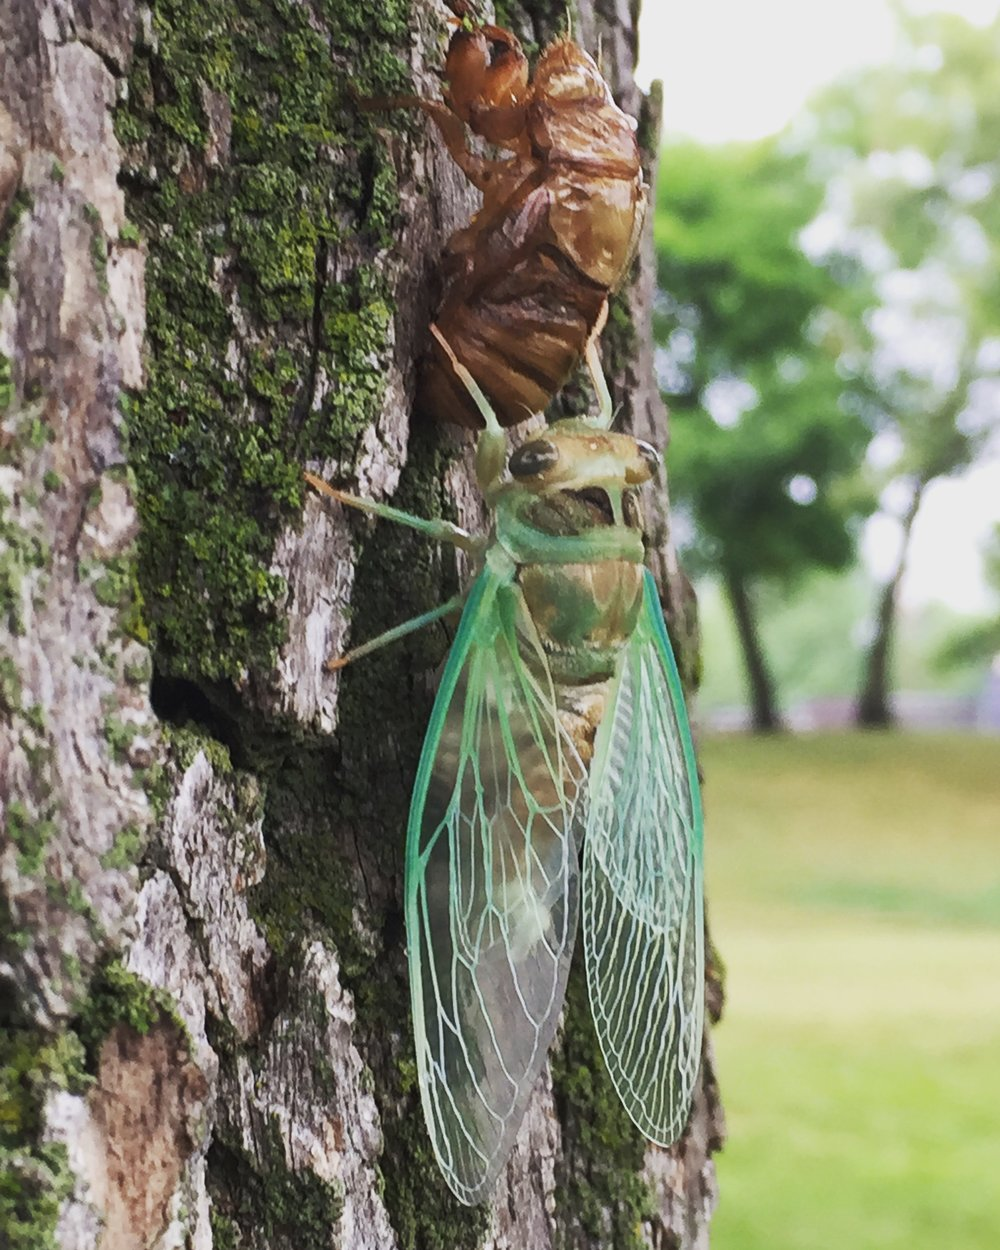 cicada remerging  by william waltz